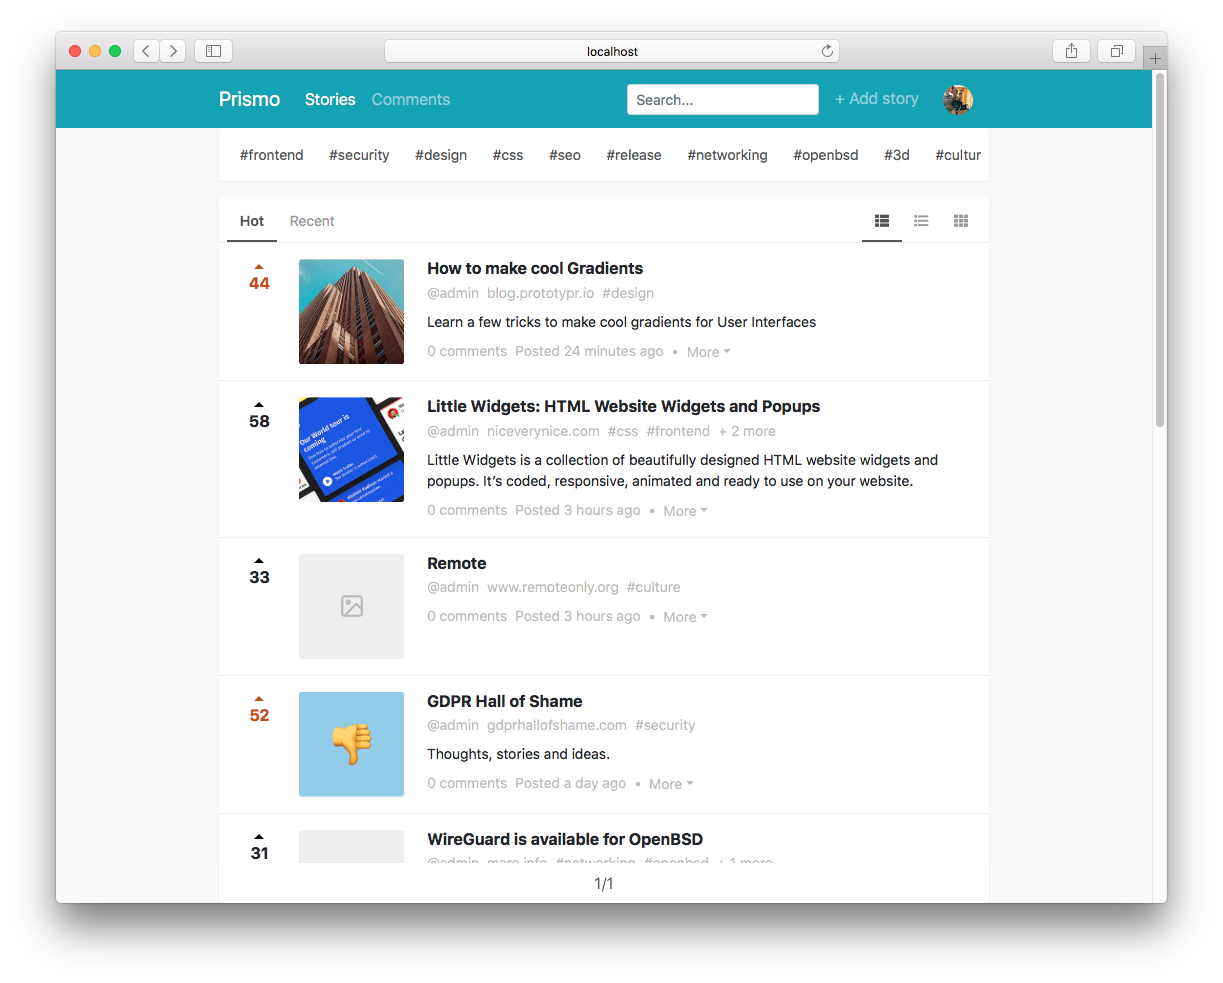 Prismo is a decentralized link-sharing app powered by